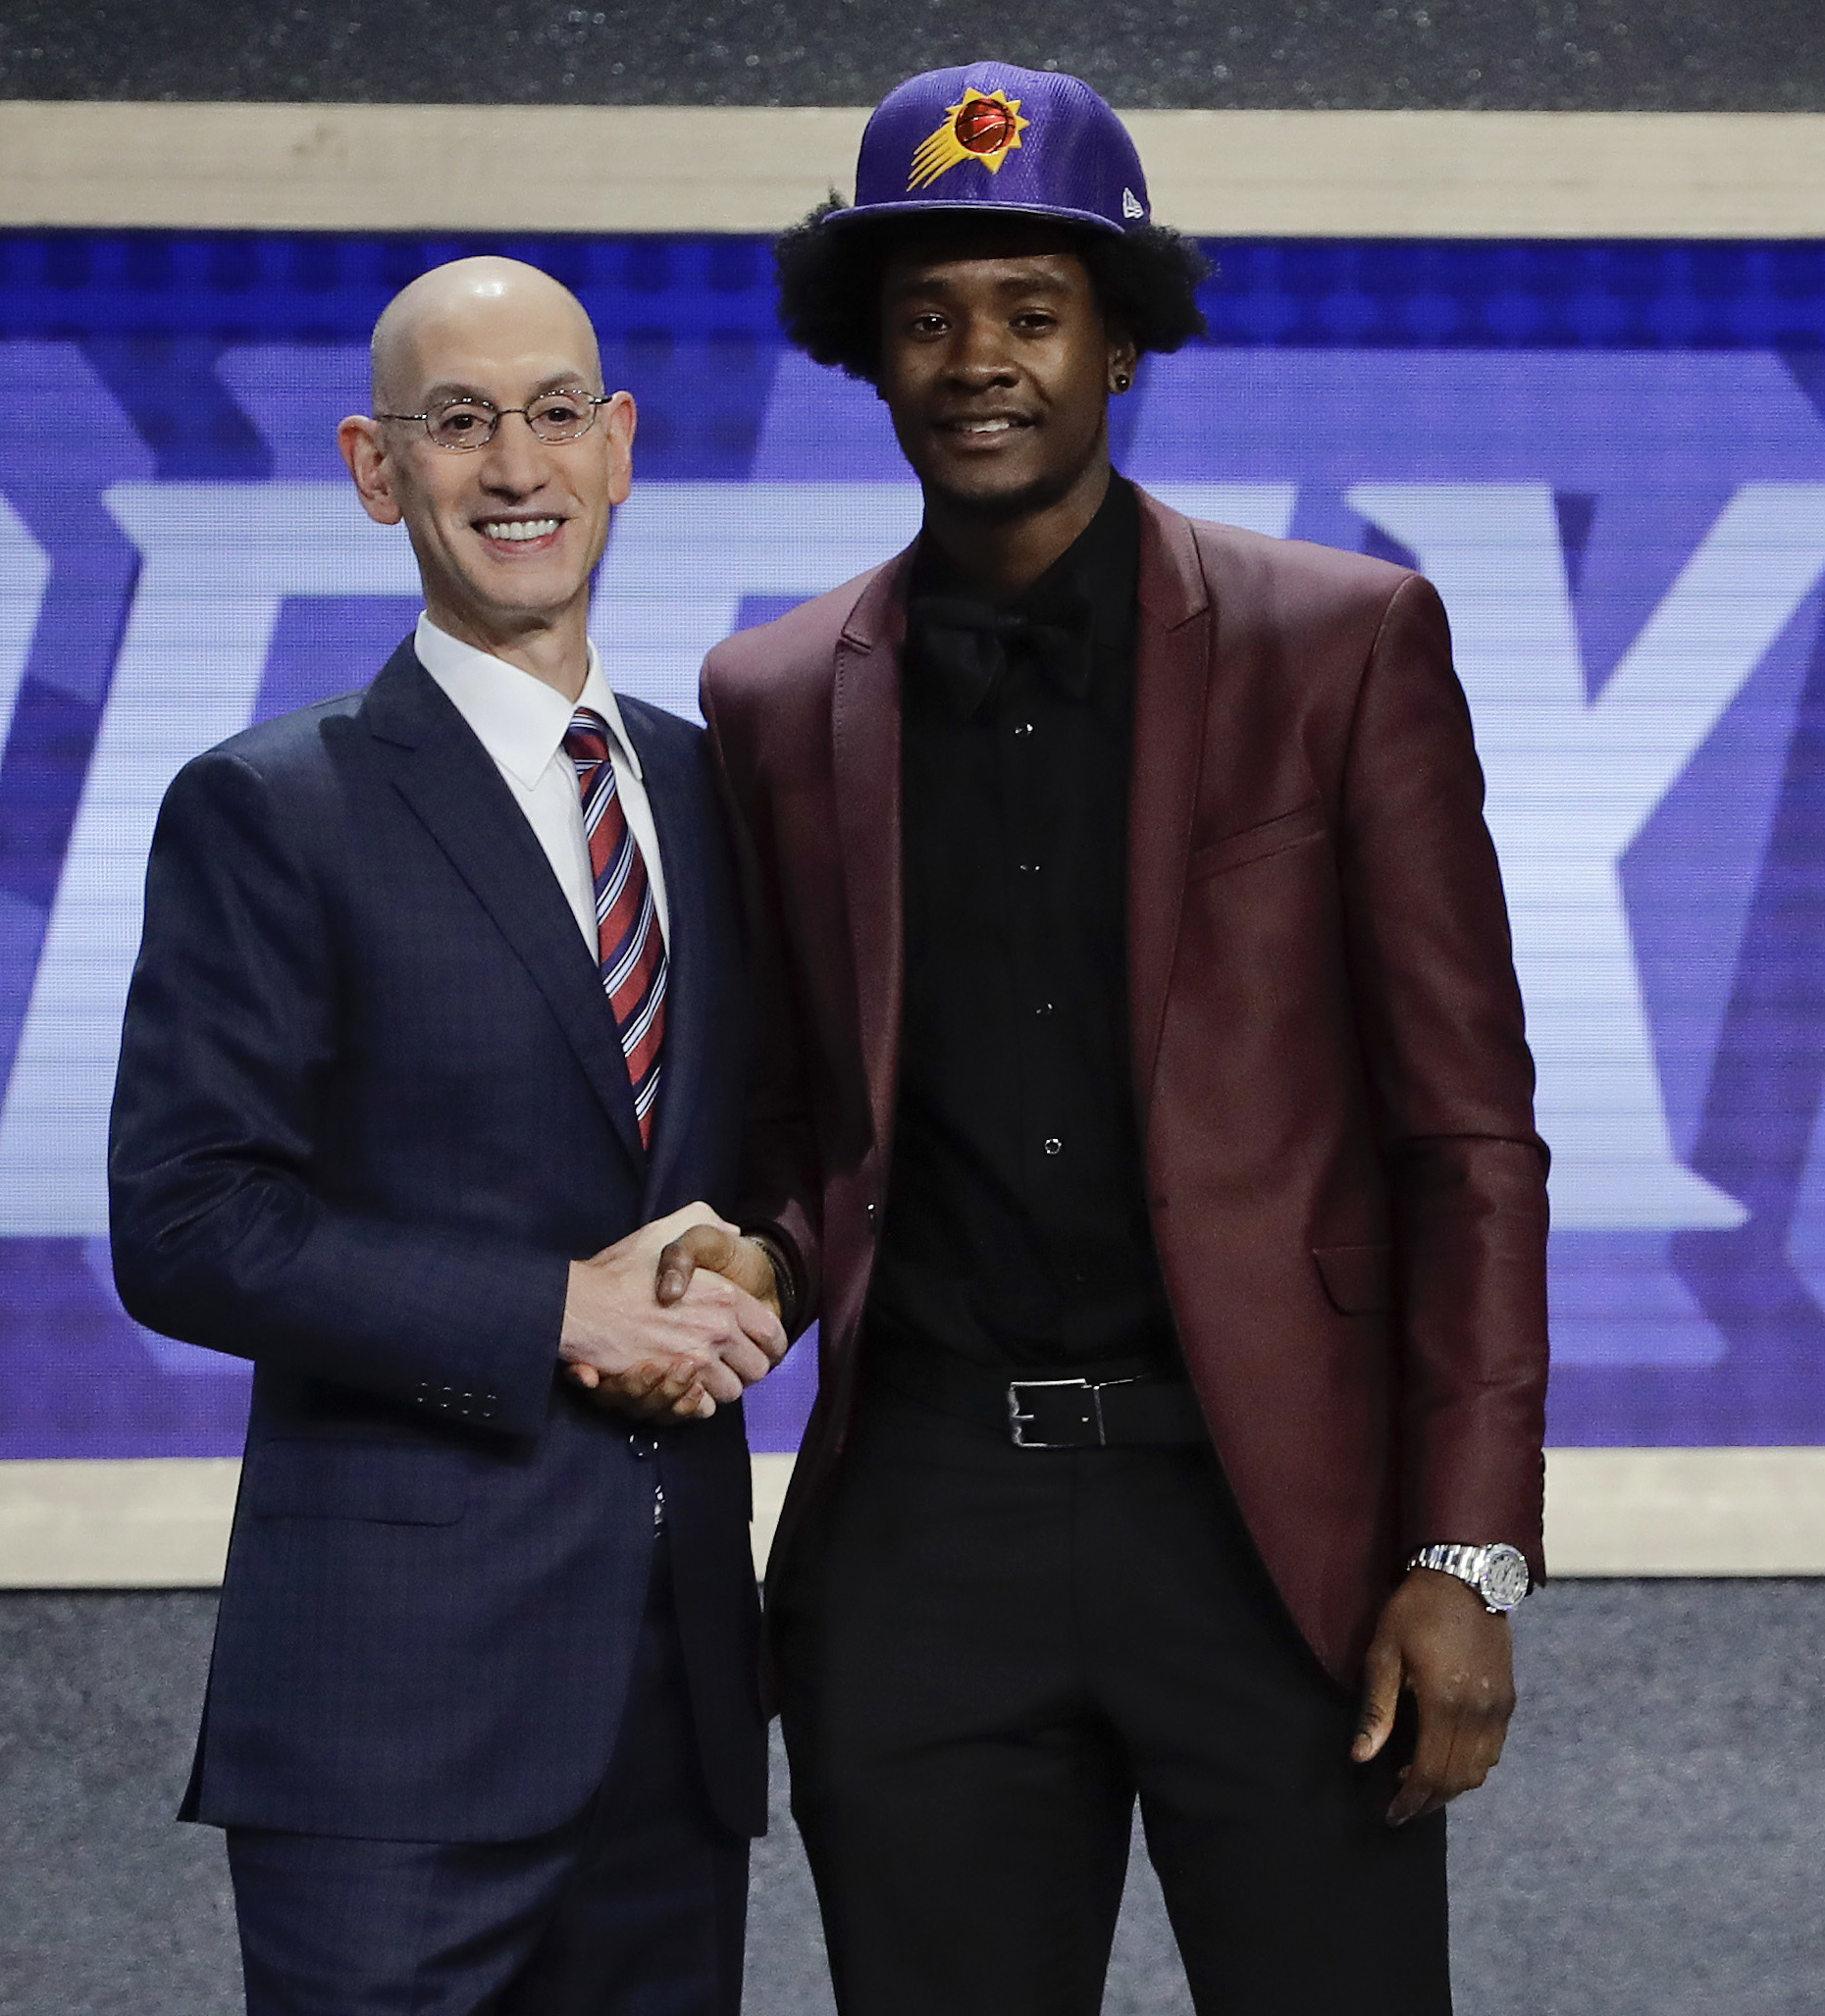 May The 4th Be With You Sacramento: Phoenix Suns Snag Driven Josh Jackson With 4th Pick In NBA